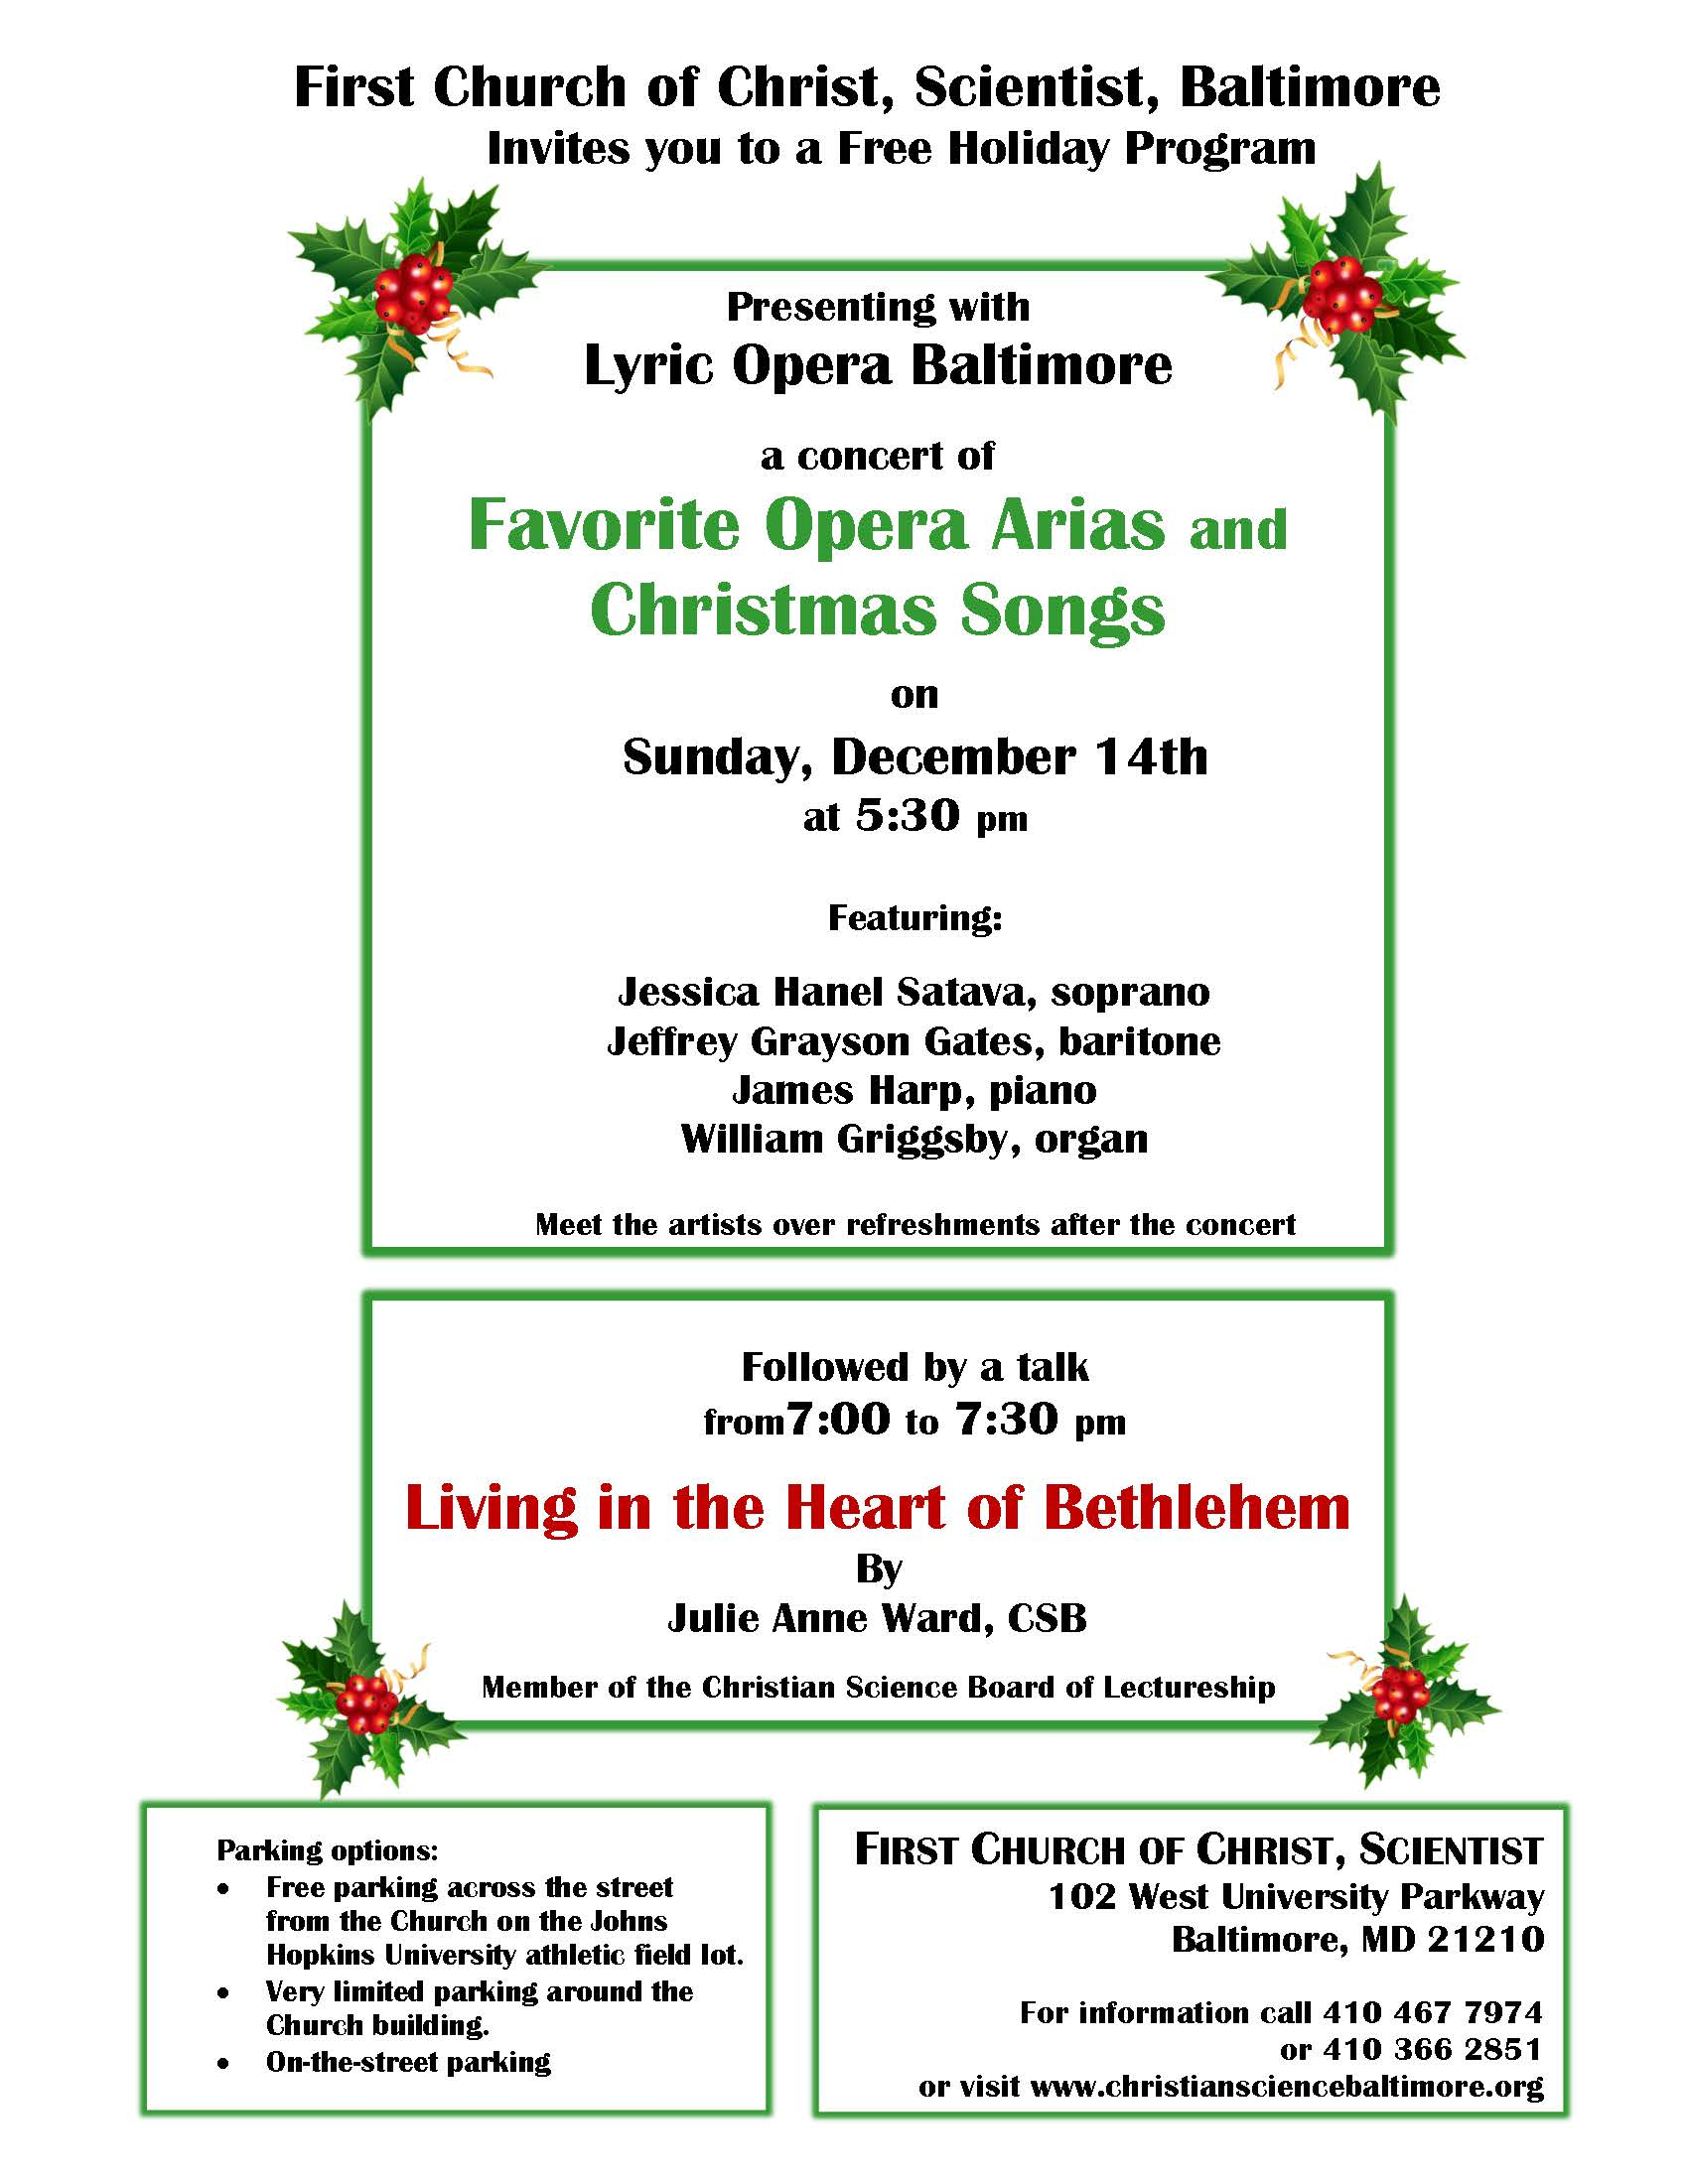 Christmas Program – Concert, Refreshments, Meet and Greet | First ...